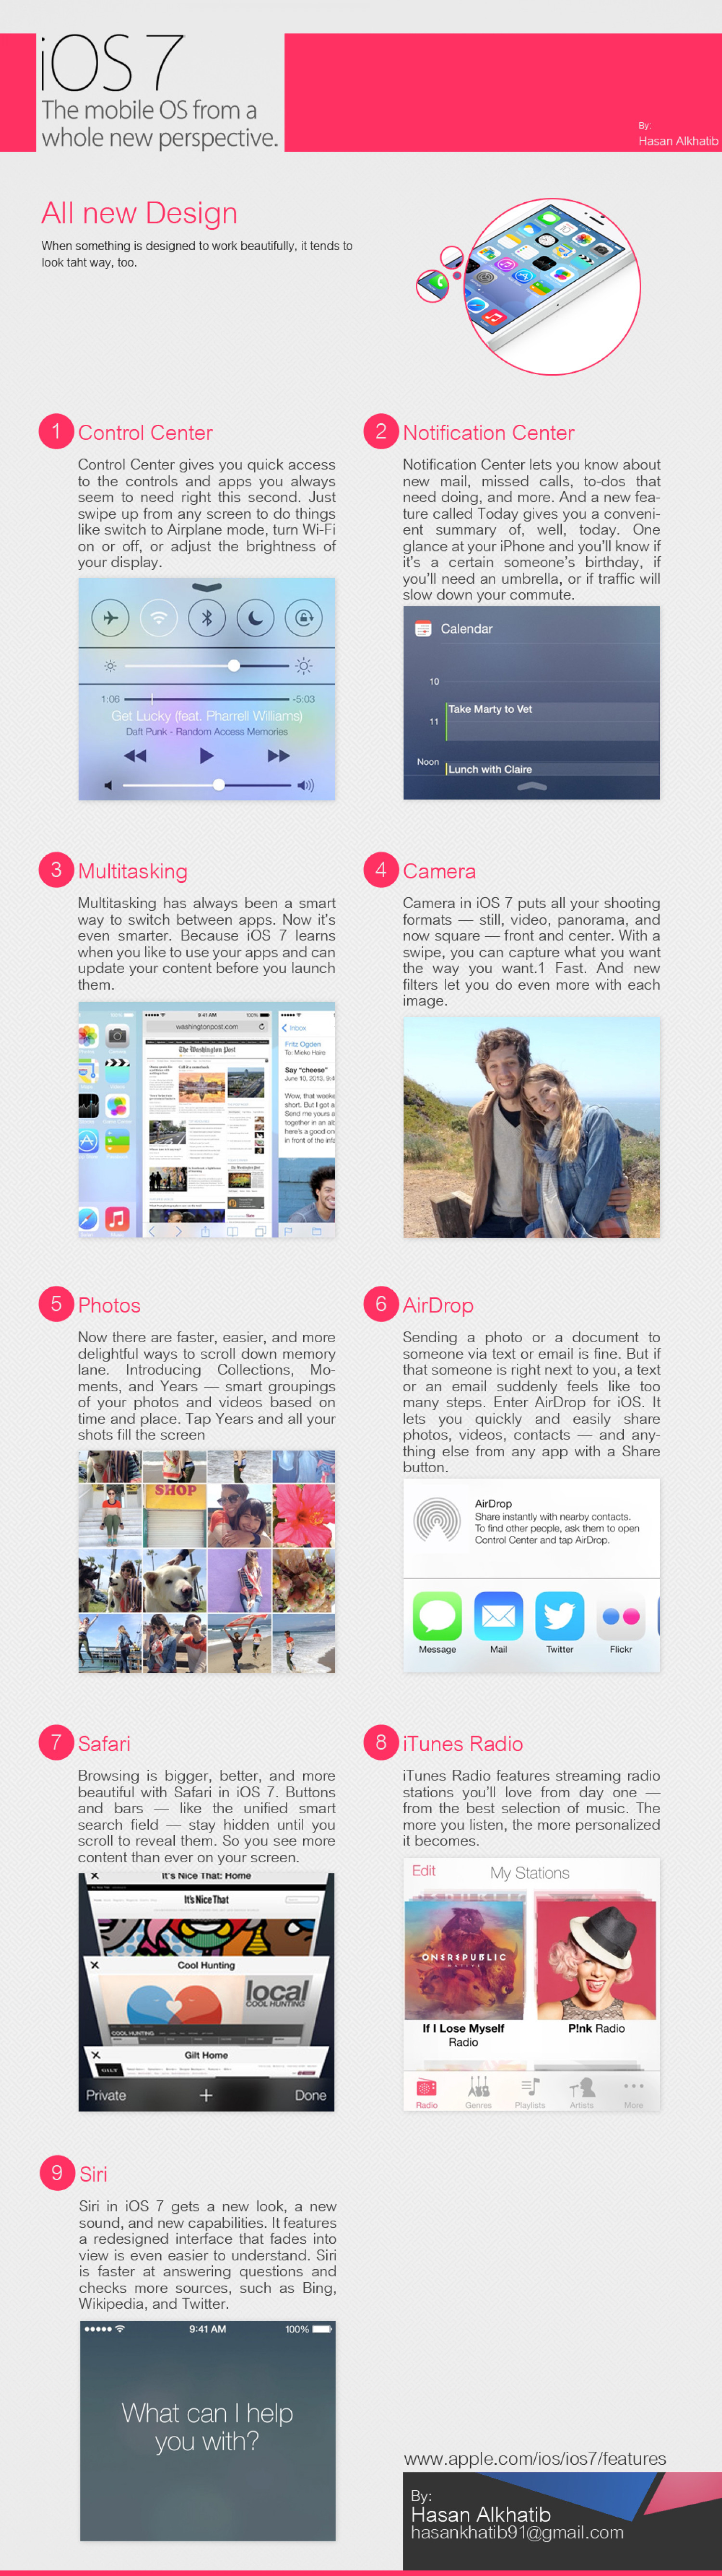 iOS 7 New Features Infographic